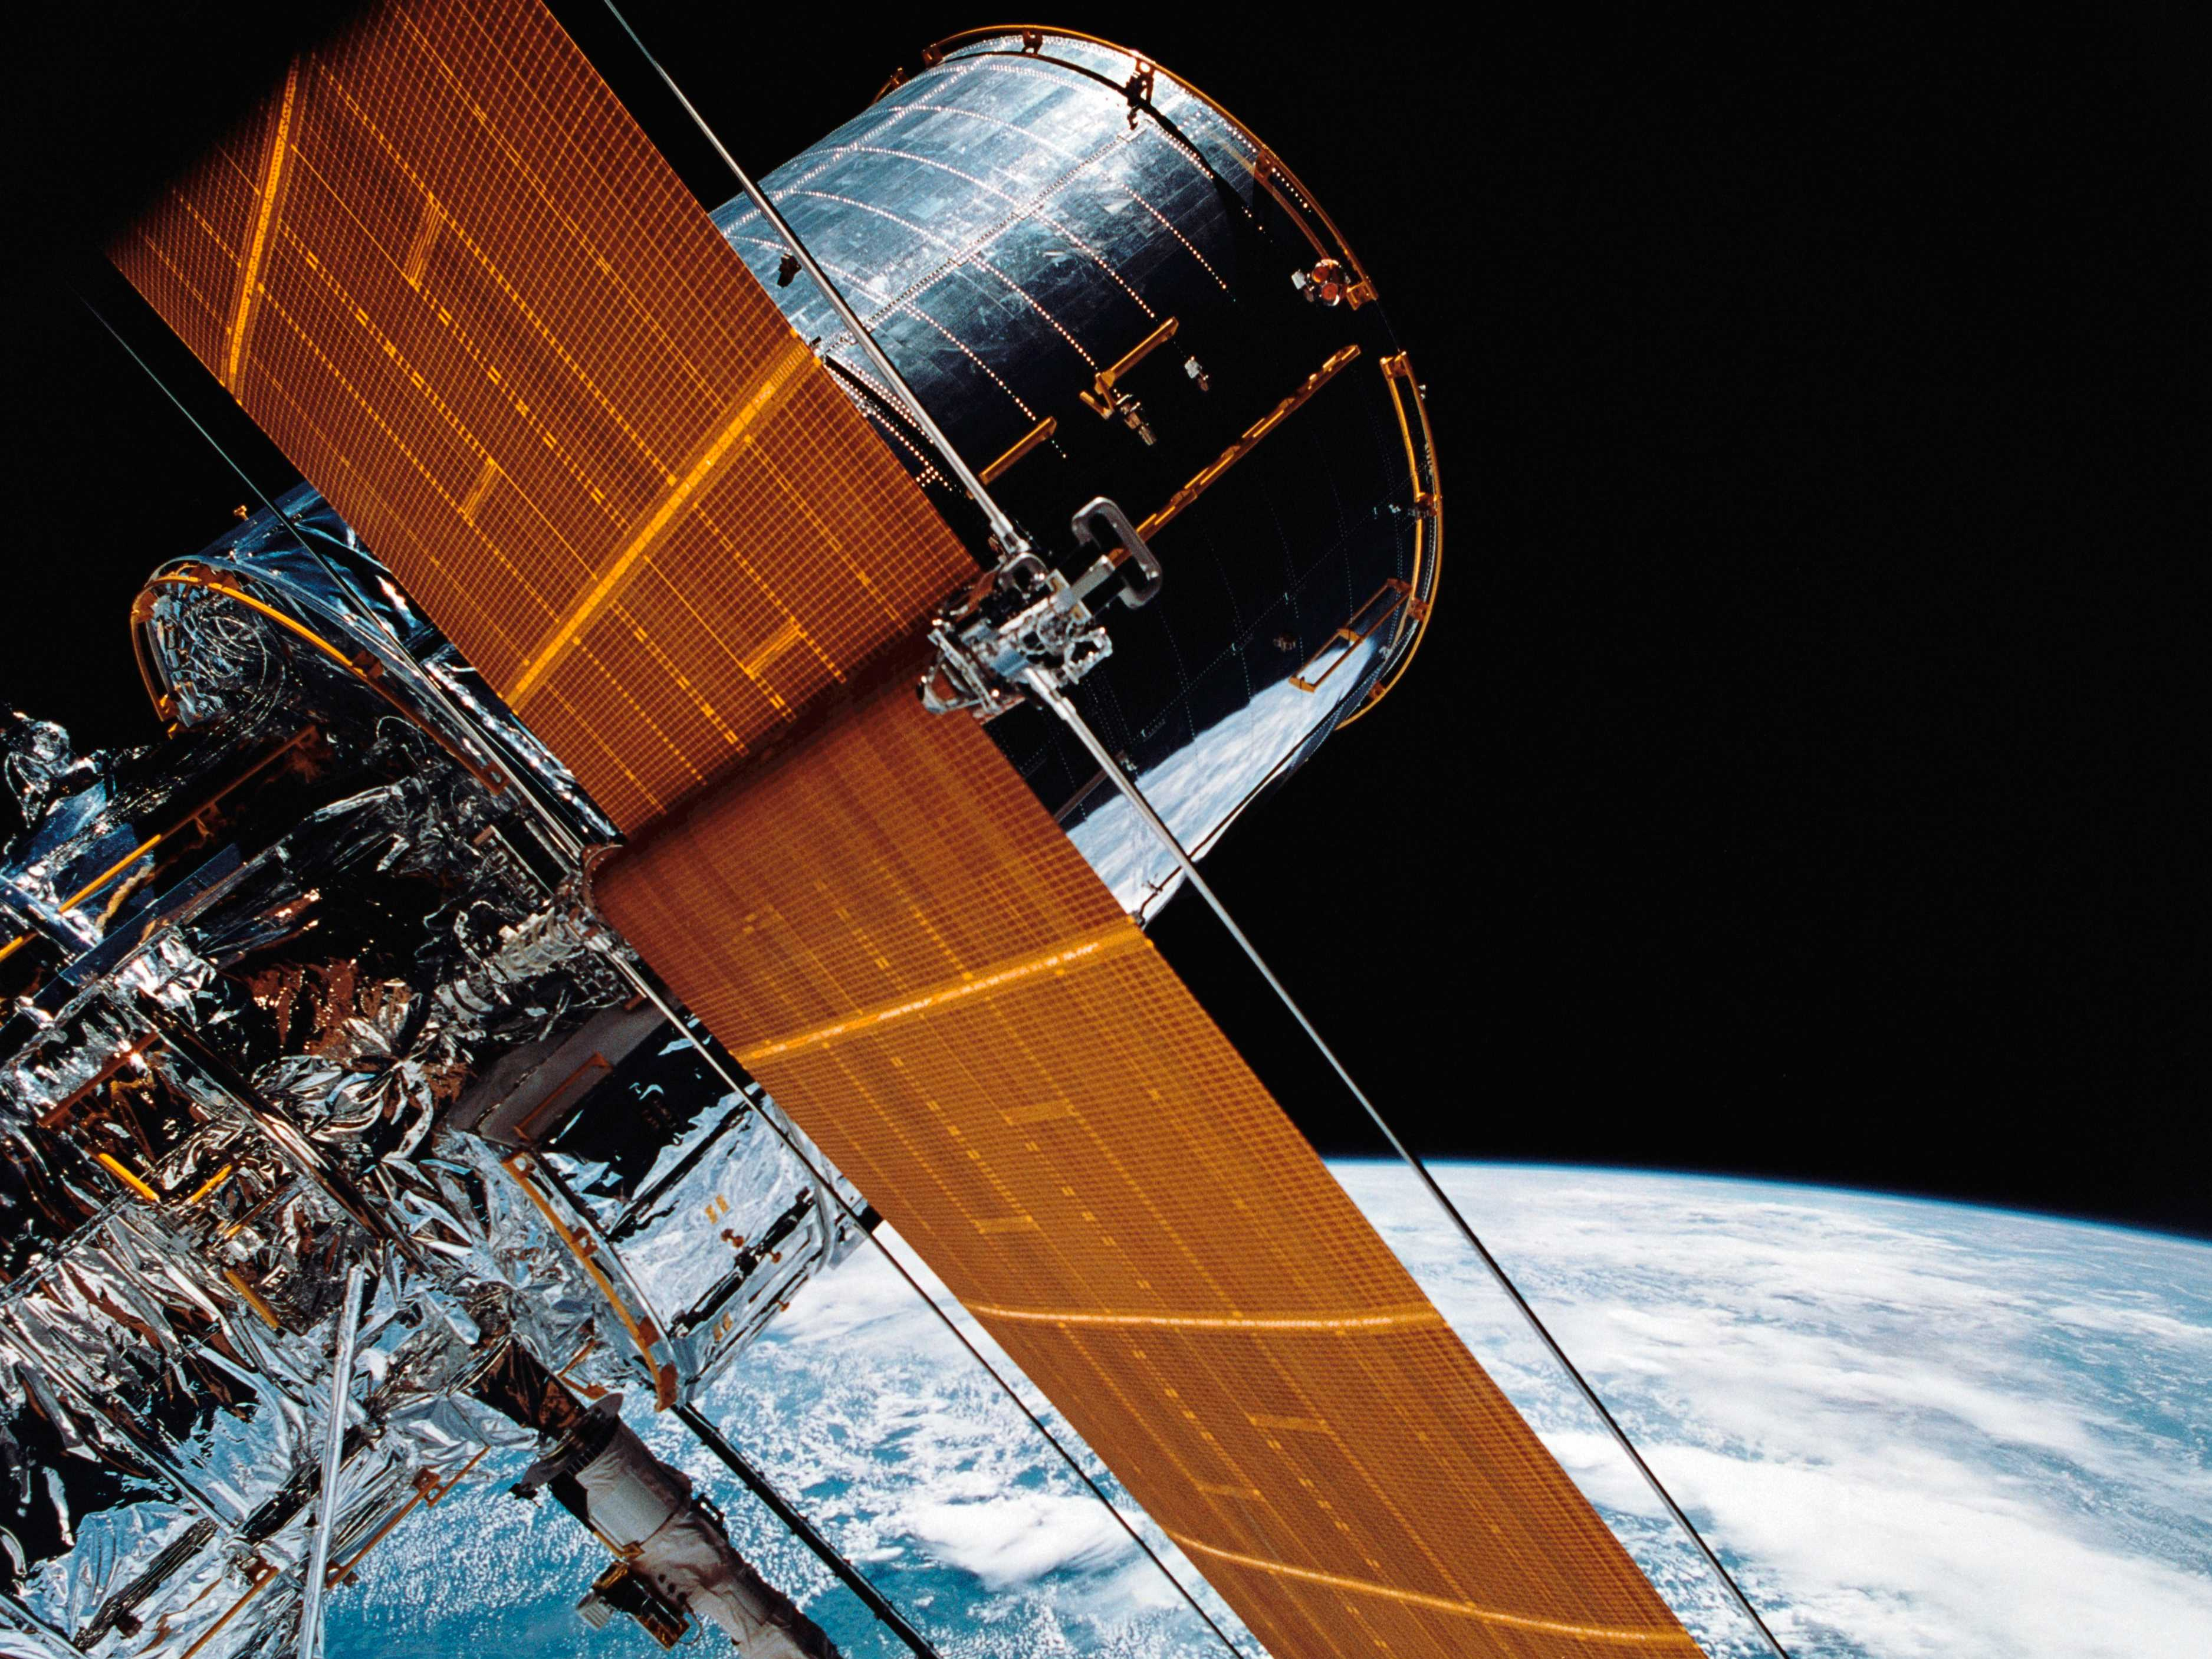 Hubble Space Telescope Sidelined by Serious Pointing Failure